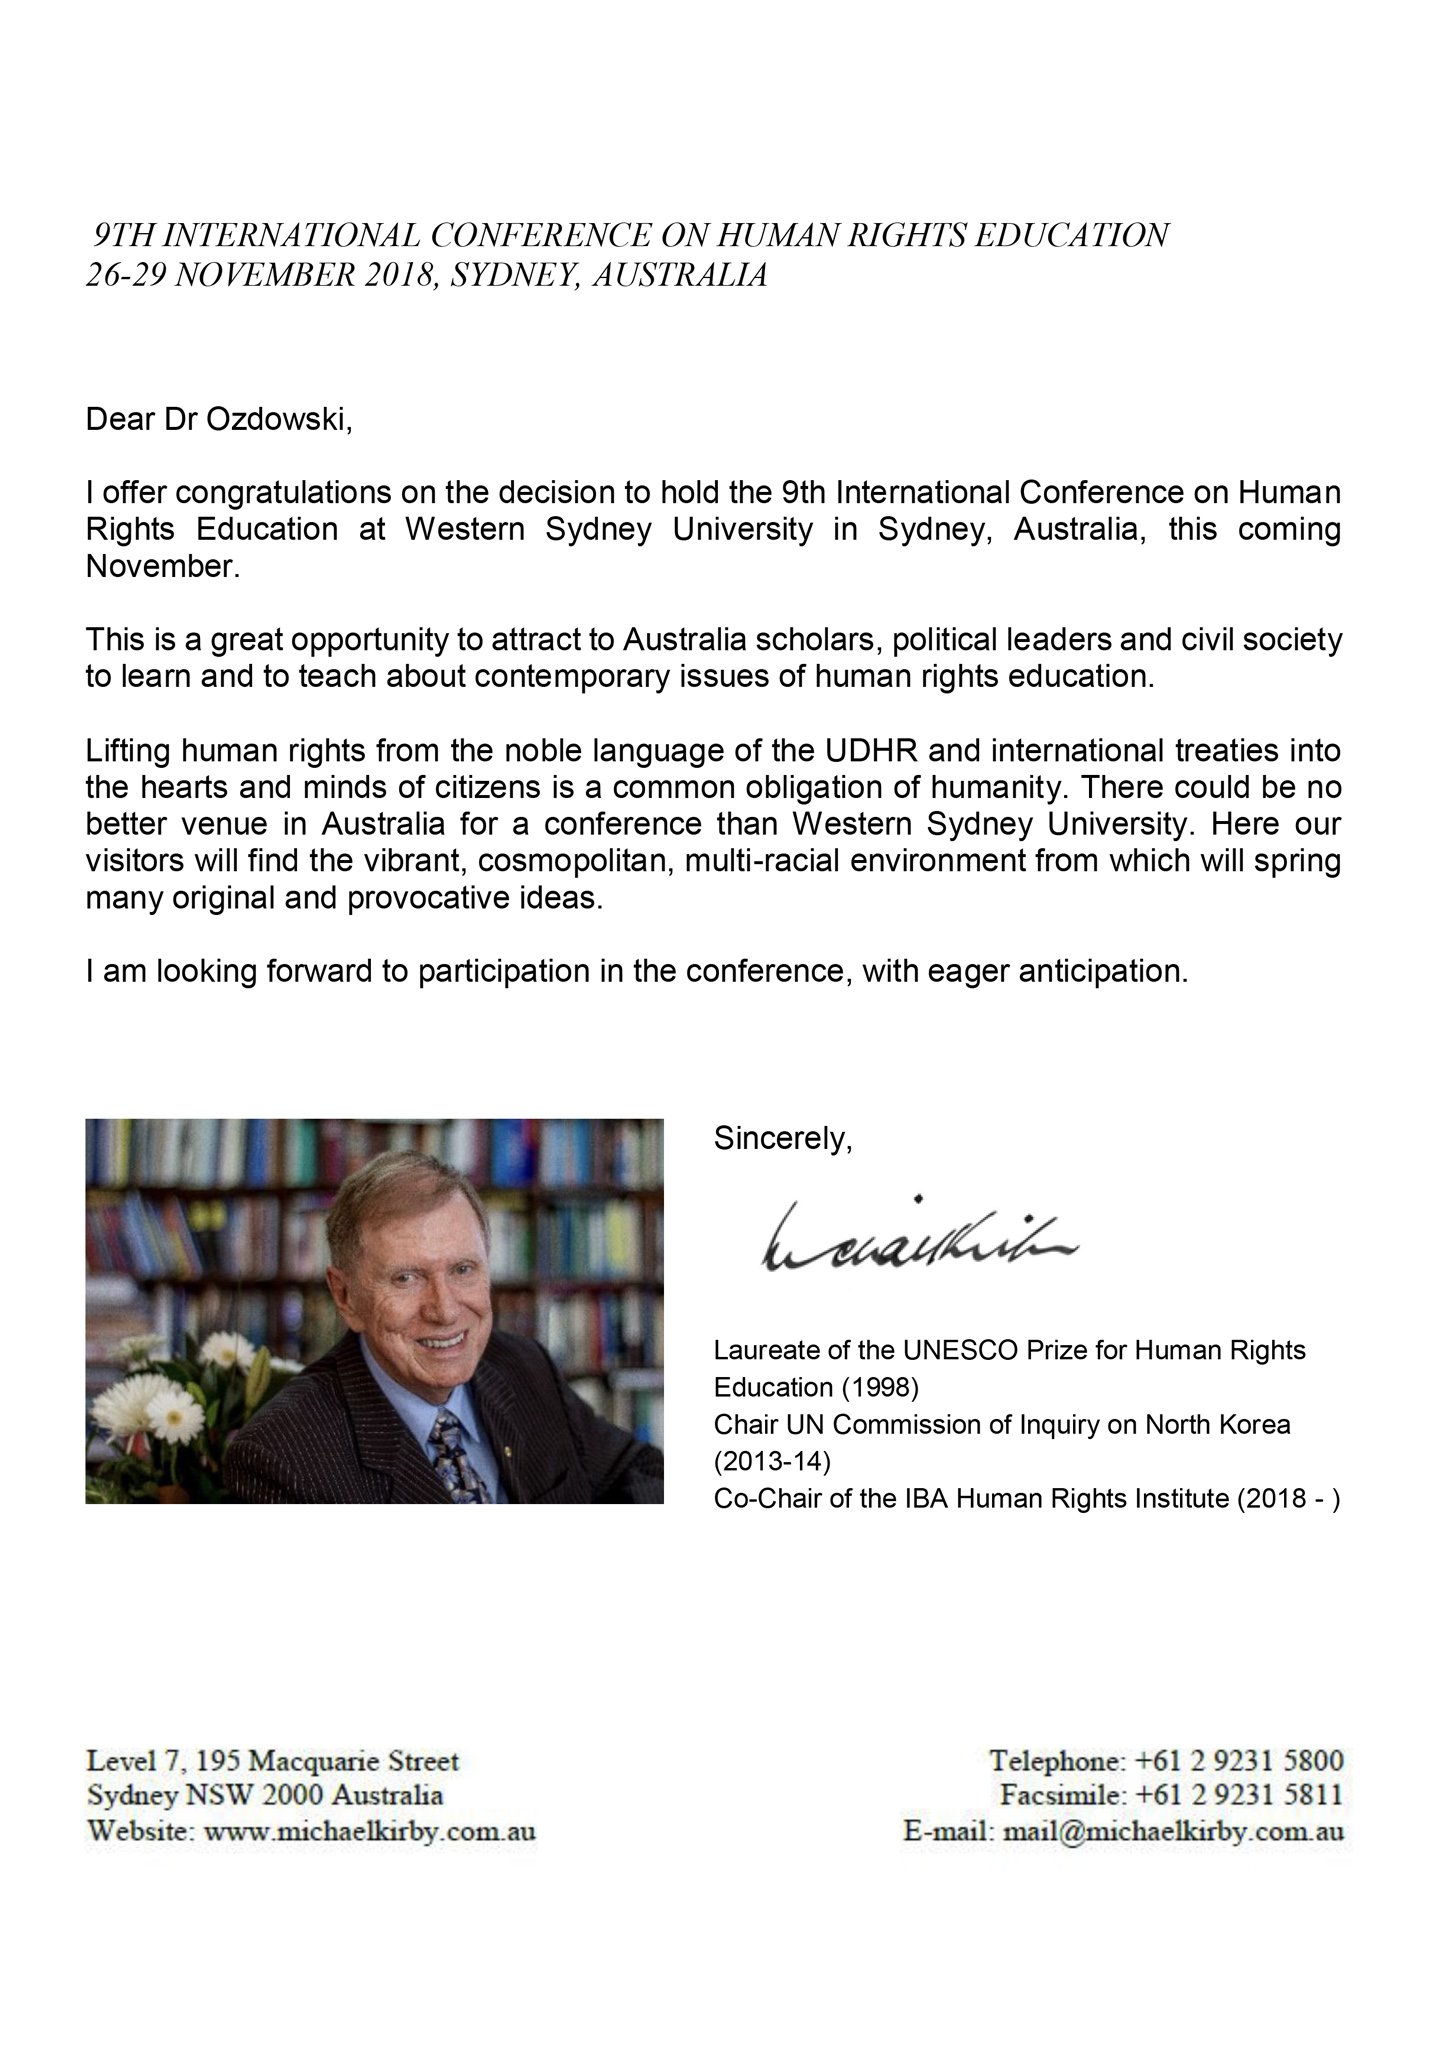 9th ICHRE Conference, International Conference on Human Rights Education, Michael Kirby